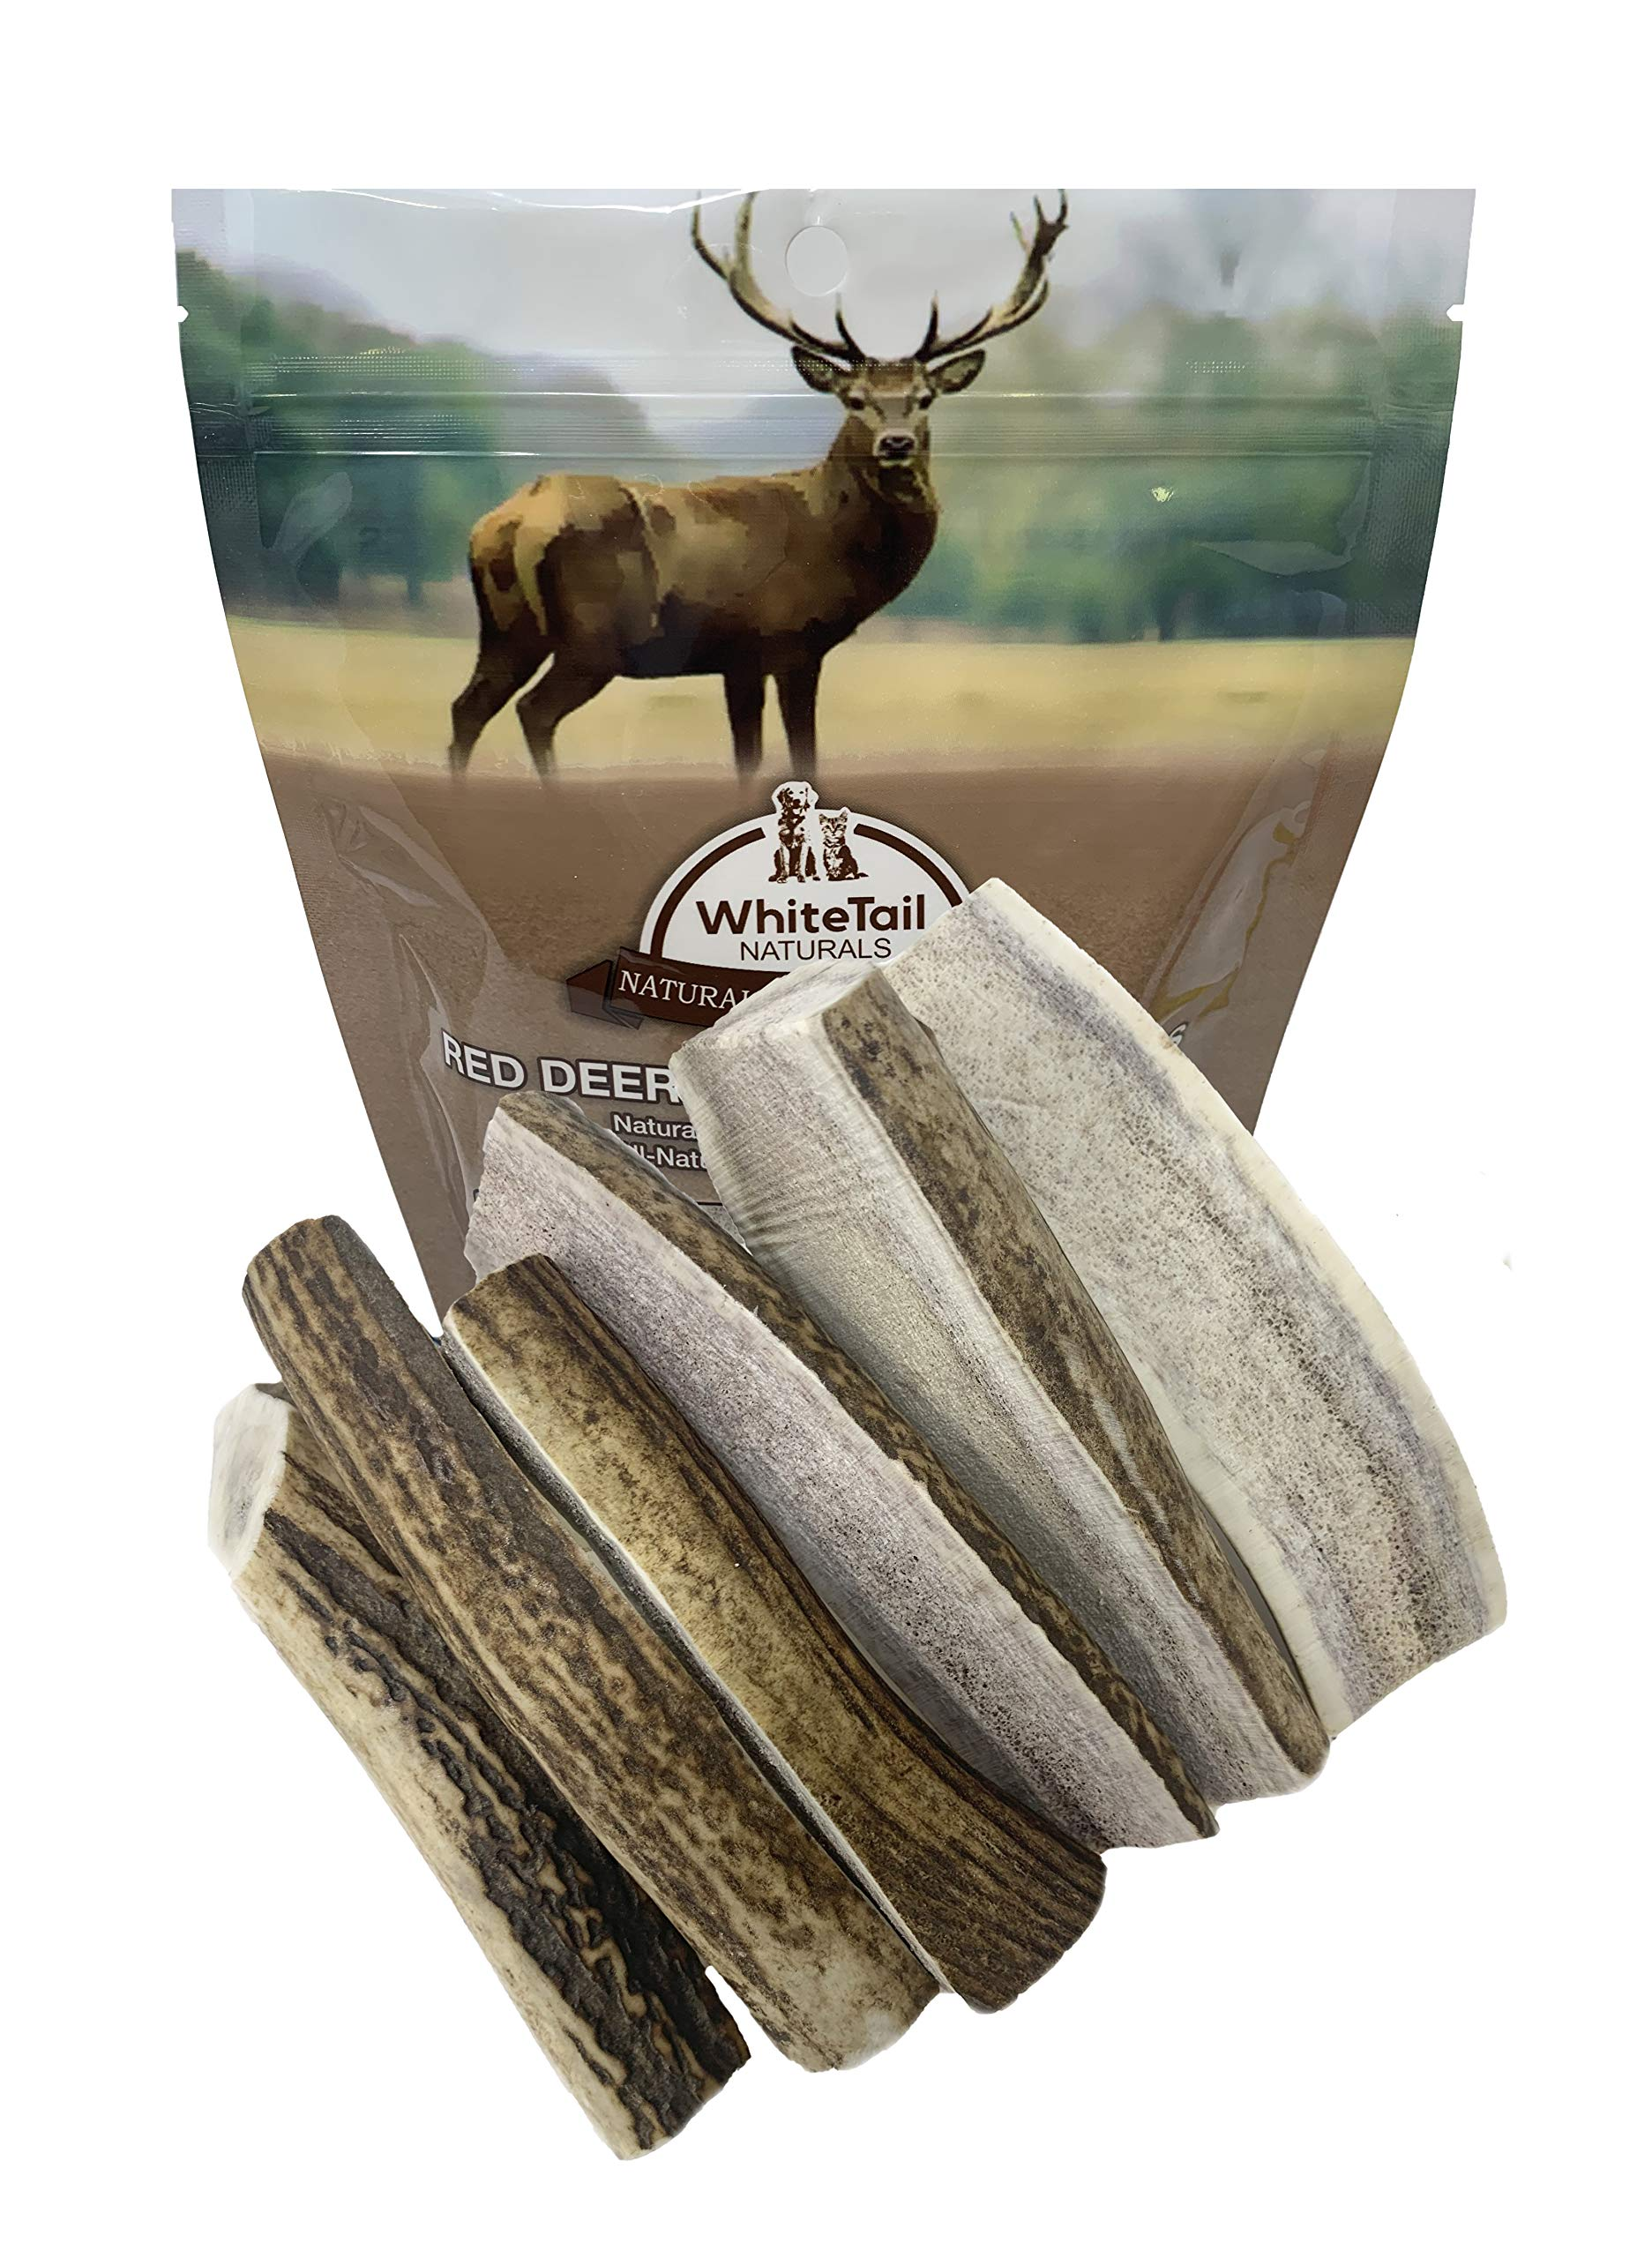 WhiteTail Naturals Grade A, Split Red Deer Antlers for Dogs   (6 Pack Medium)   Naturally Shed Antler Horn   5 to 6 Inch Long Natural Dog Chews   for Smaller Power Chewers